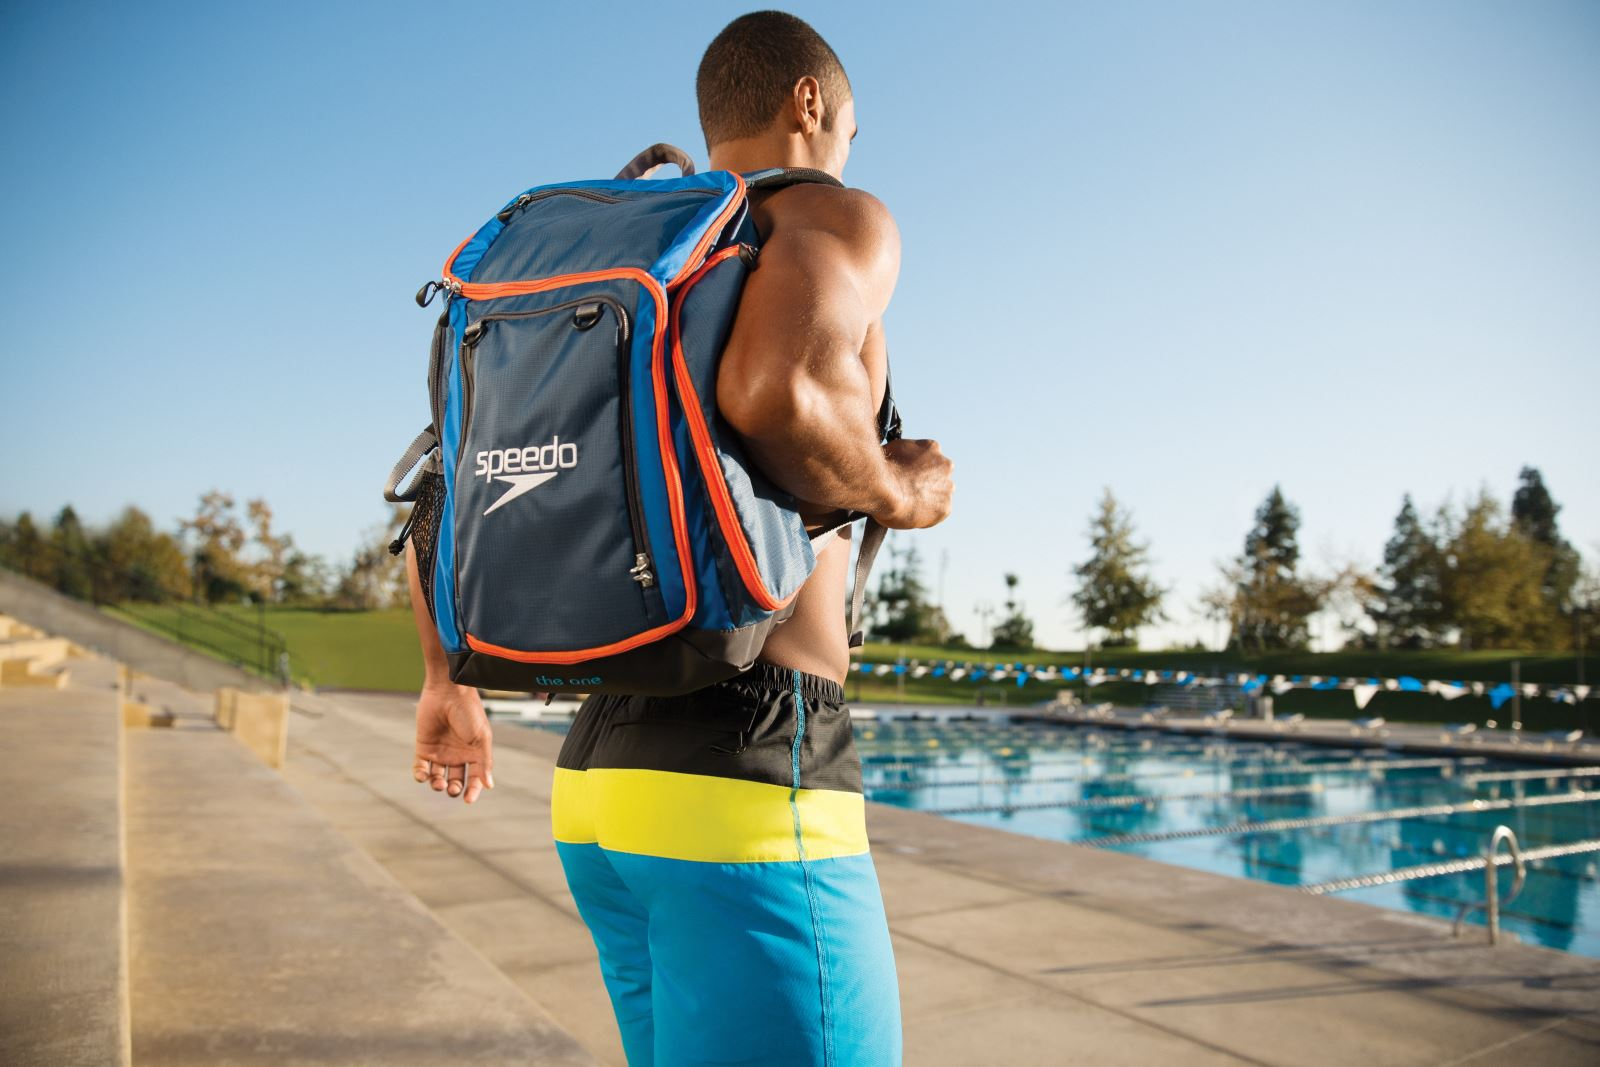 How To Care For A Swim Bag